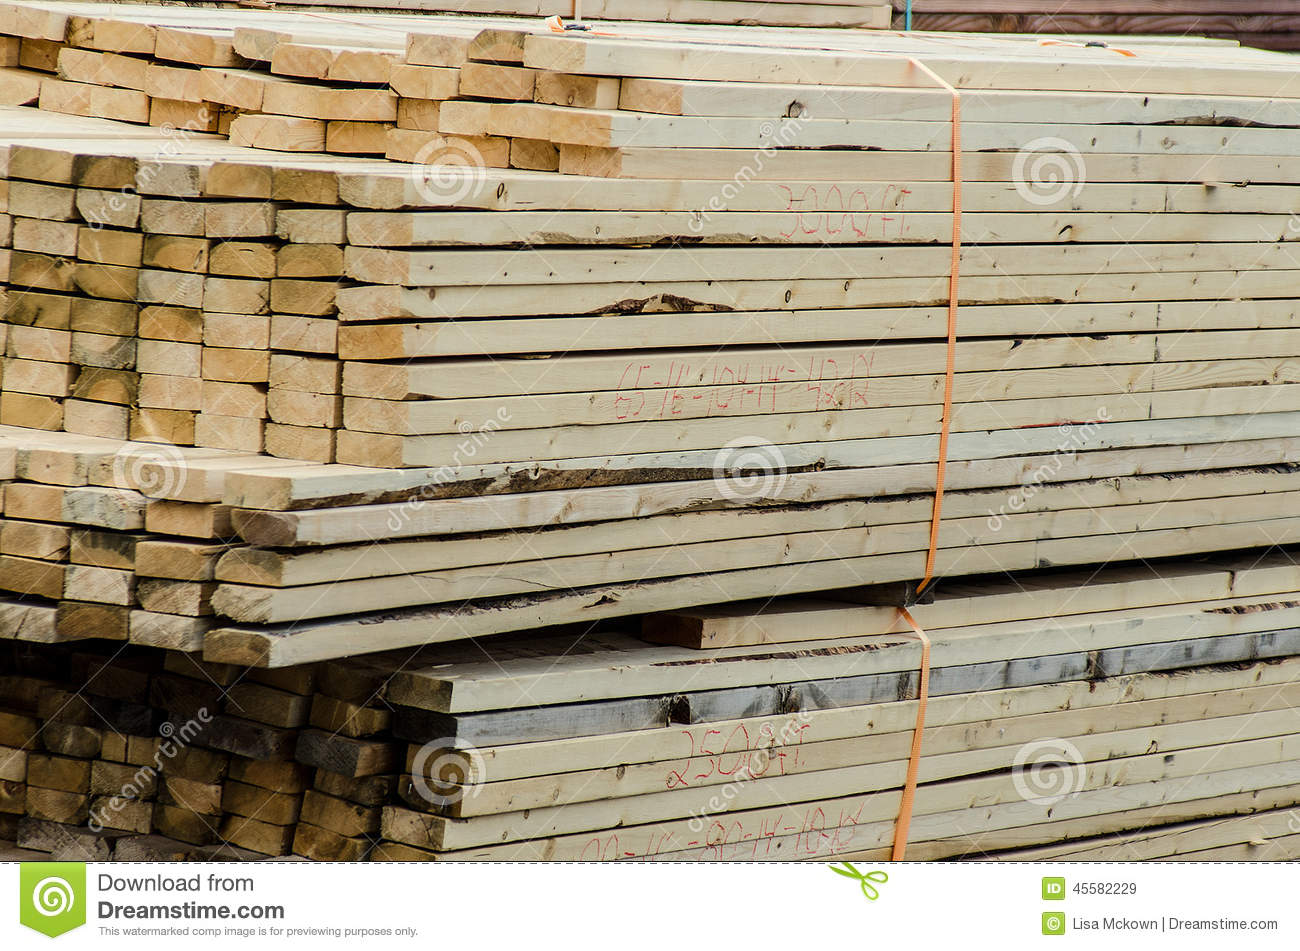 Wood piles for construction shipped stock image